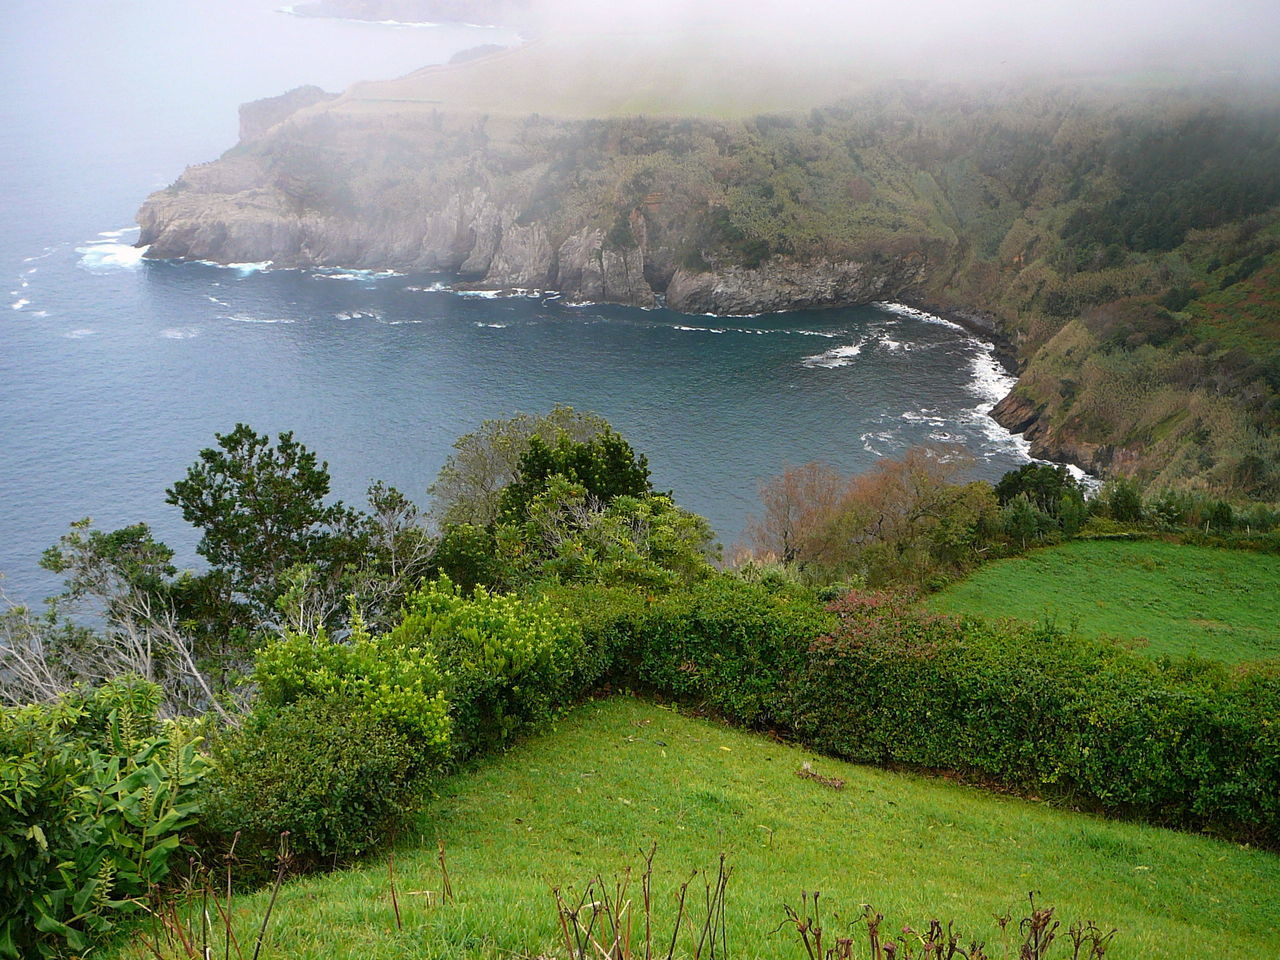 Misty Morning View ~ Azores Bay View Beauty In Nature Cliff Day Fog Green Fields Mist Nature No People Ocean View Outdoors Portugal Sea Seascape Sloping Hills Tree Water